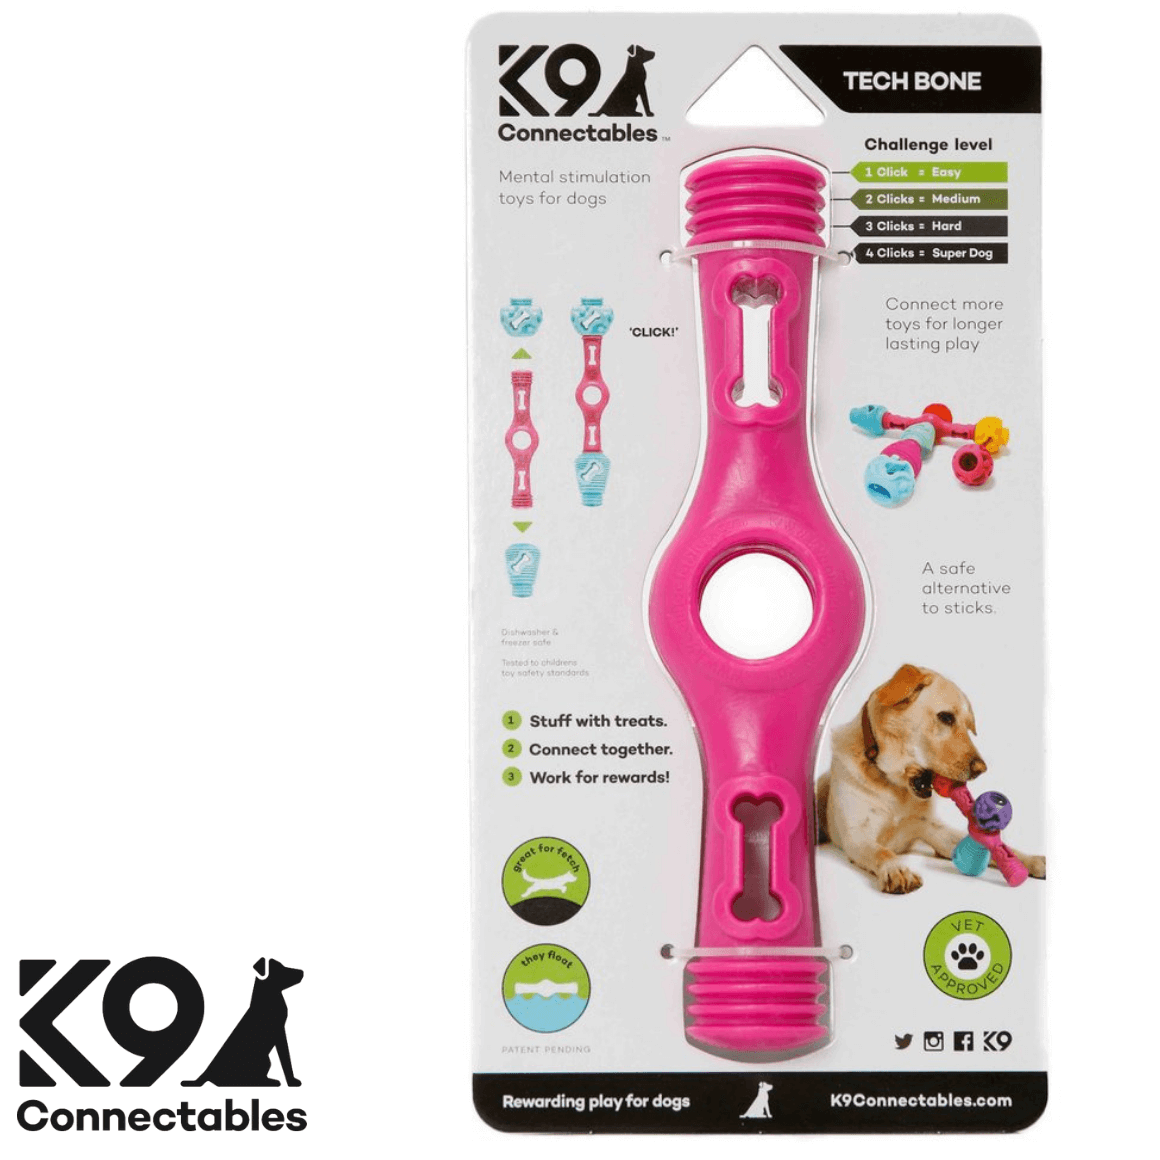 k9 Connectables Australia - The Tech Bone Pink